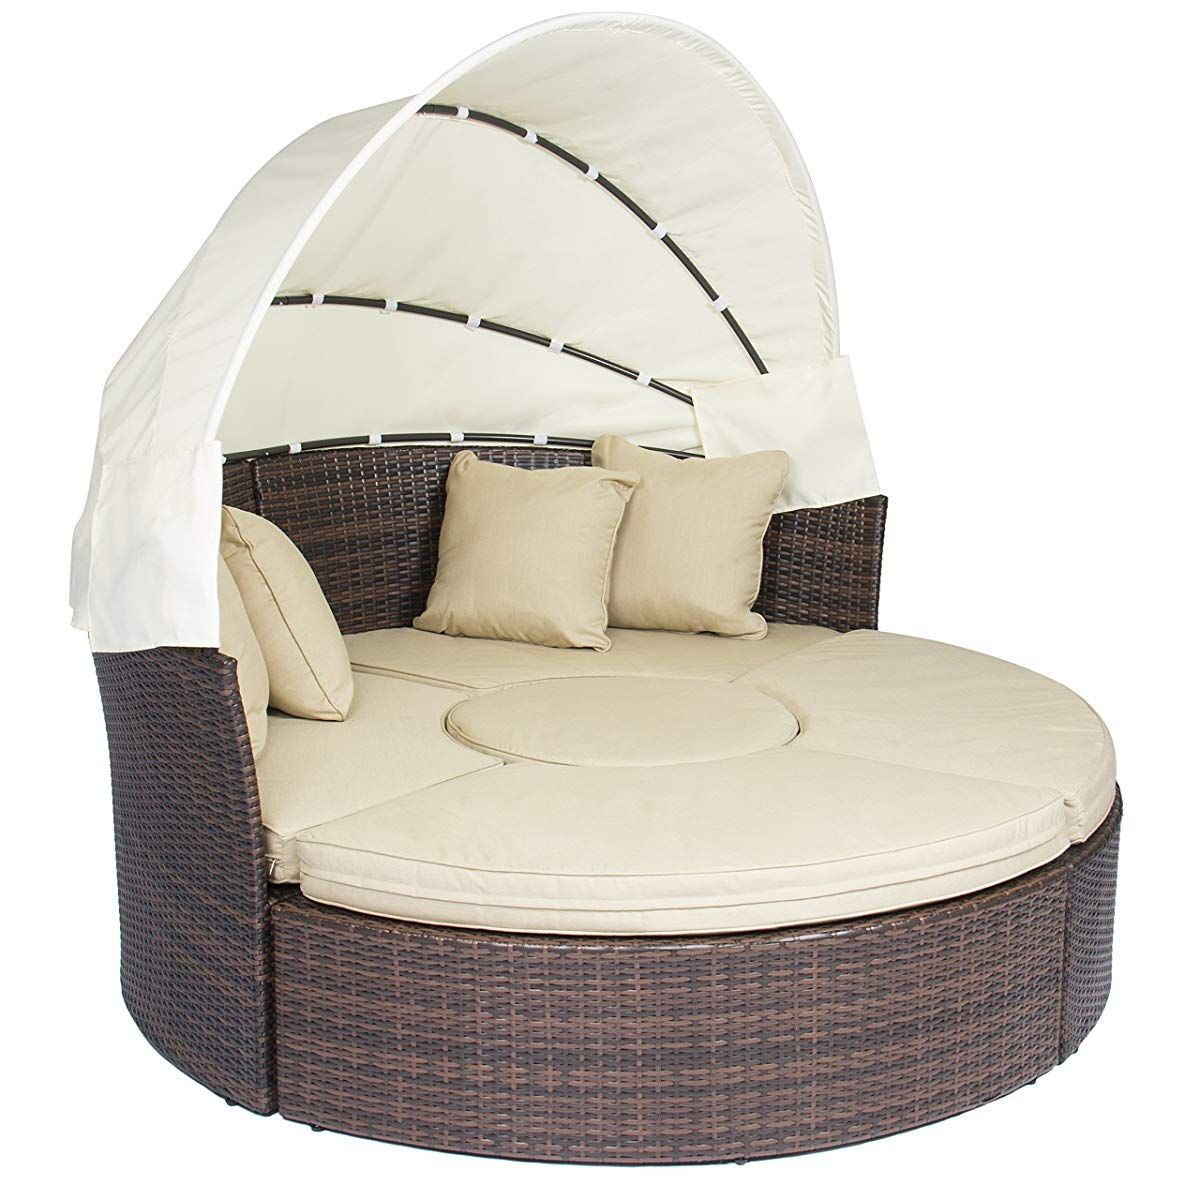 Canopy Wicker Daybed For Outdoor Beige Outdoor Daybed Patio Sofa Daybed Canopy